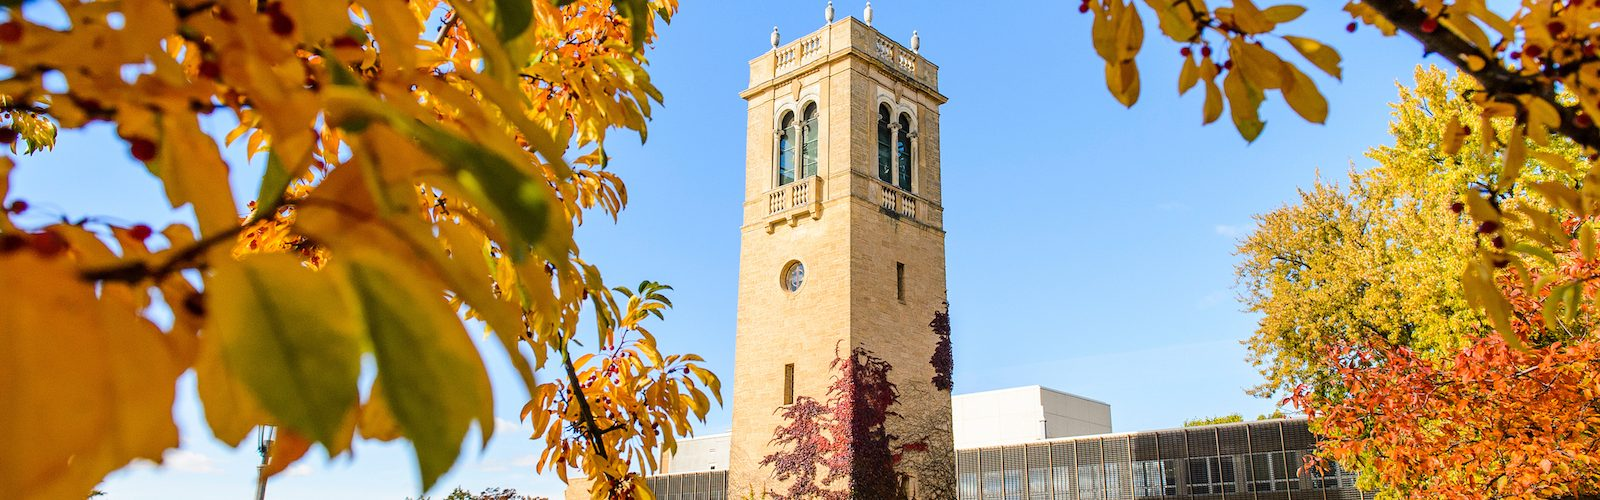 Carillon Tower framed with fall leaves